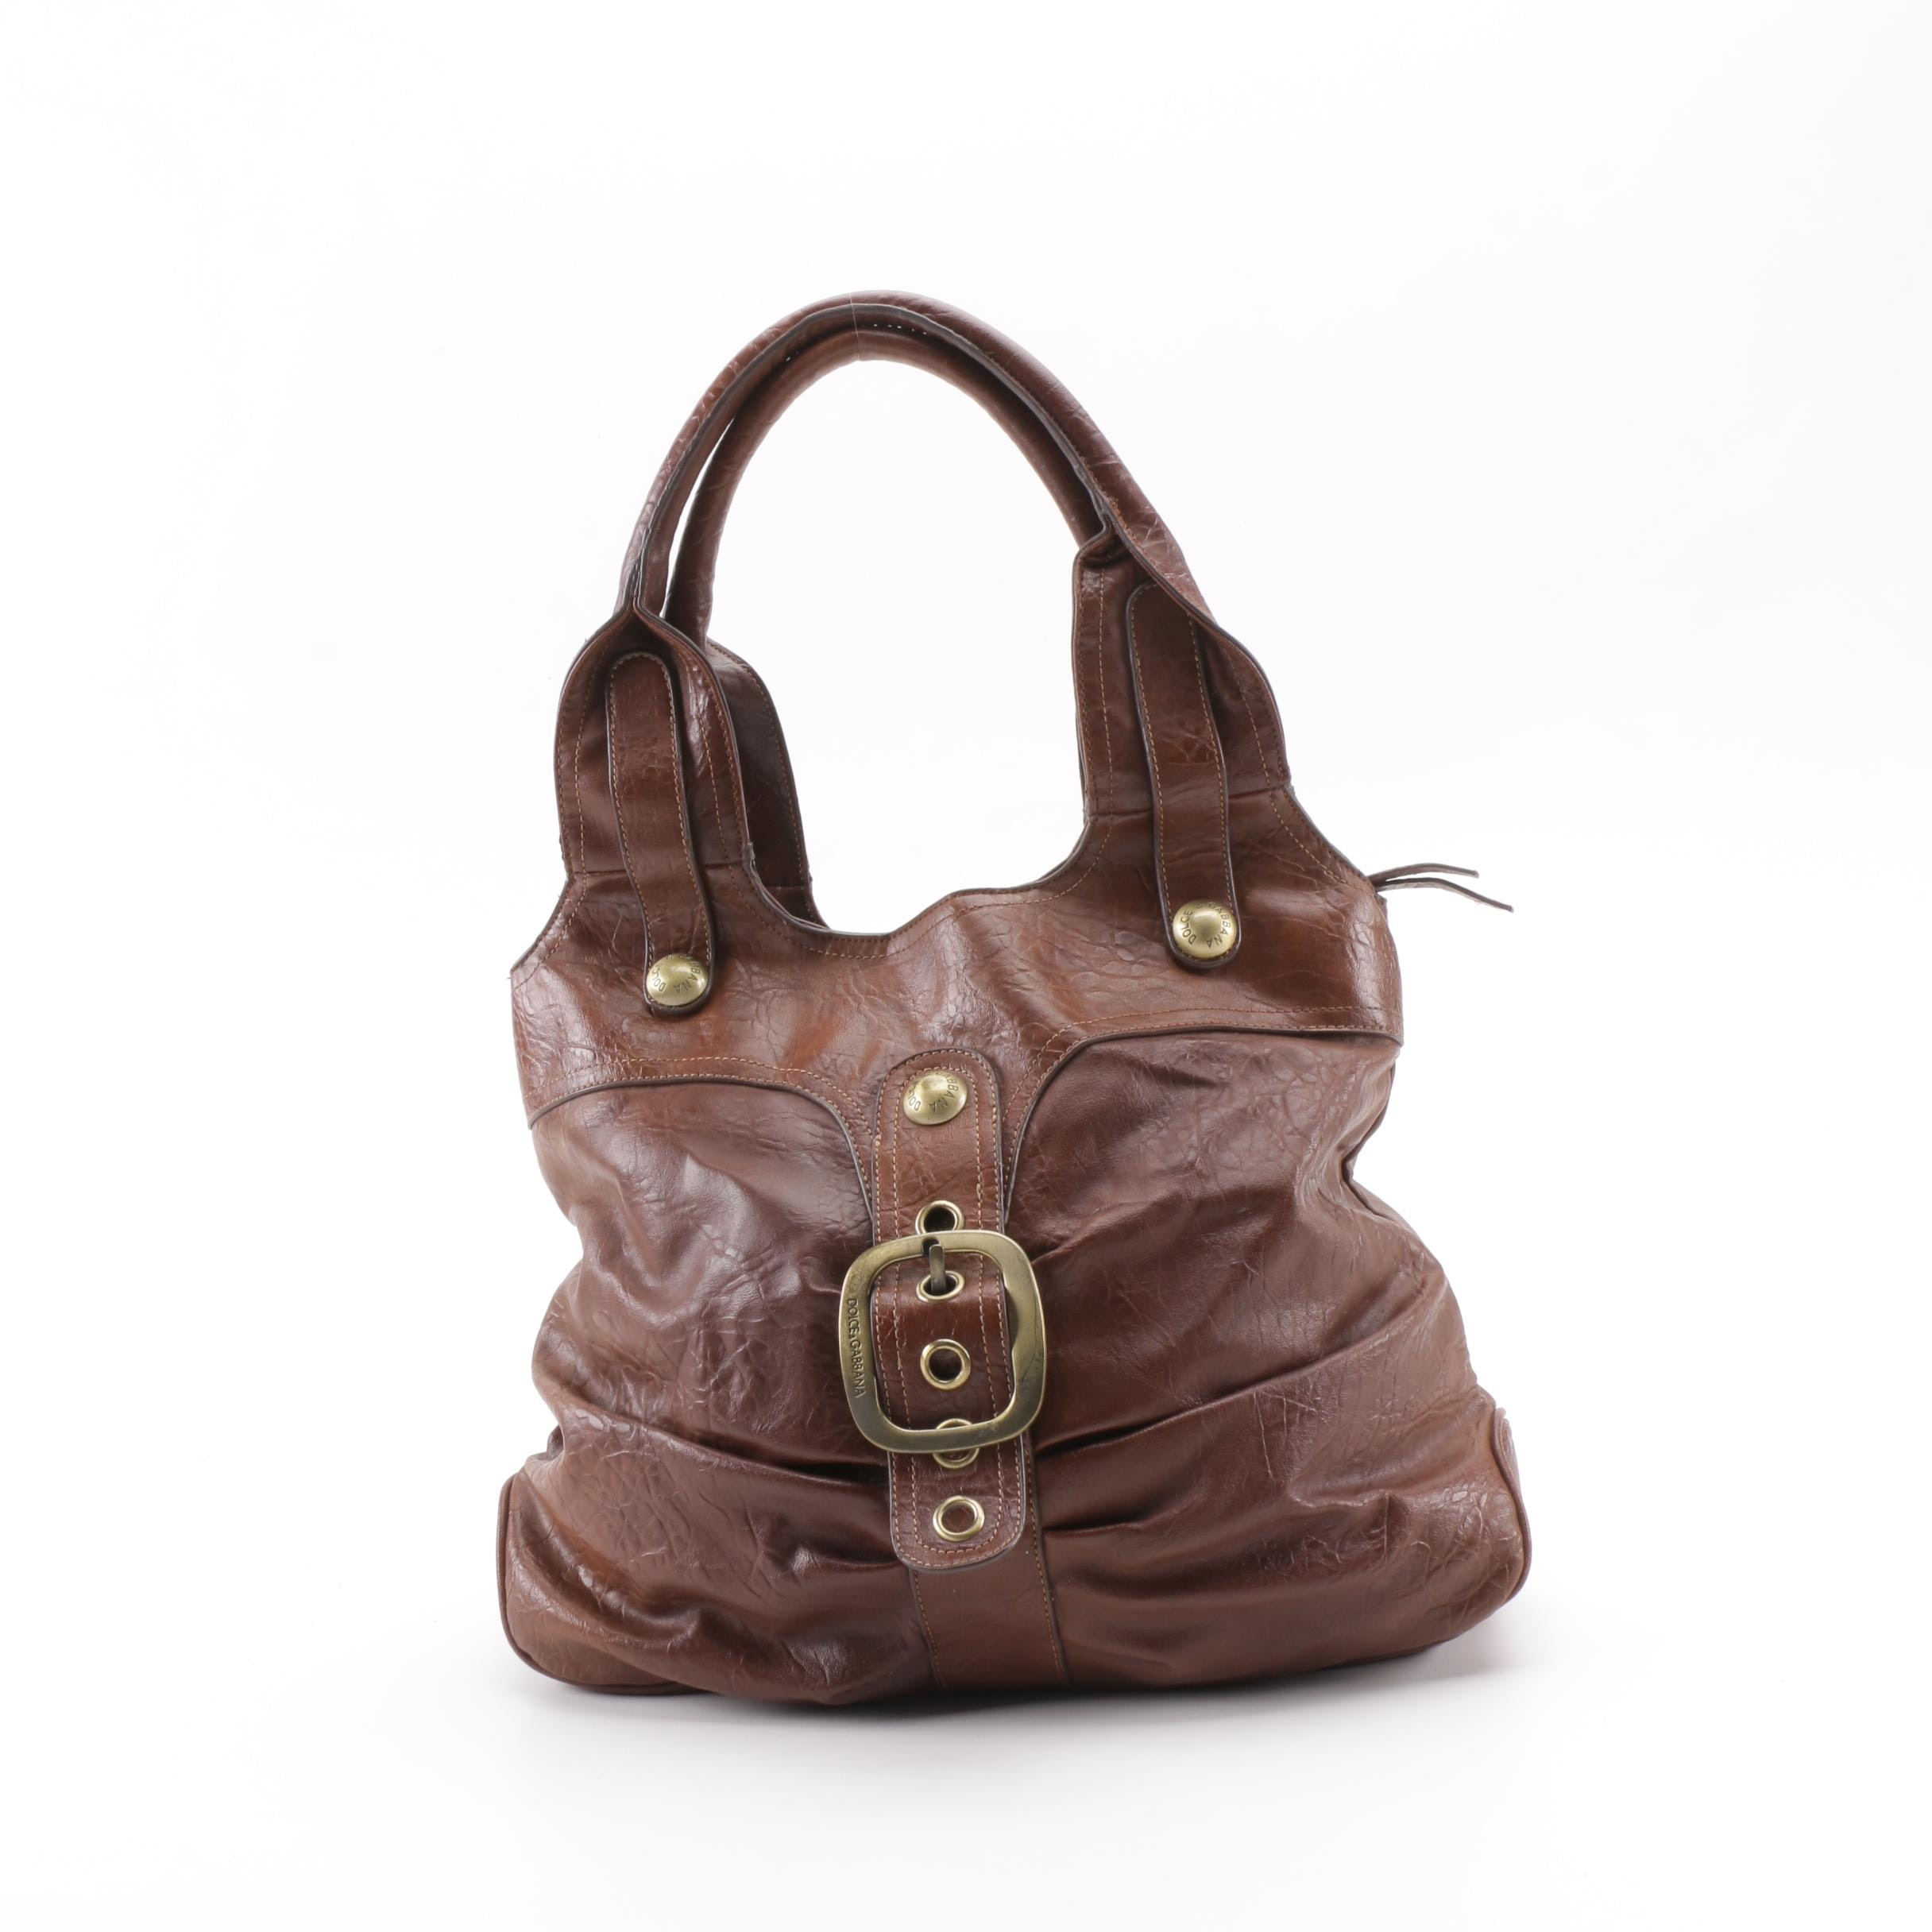 Dolce & Gabbana Brown Leather Buckle Front Shoulder Bag